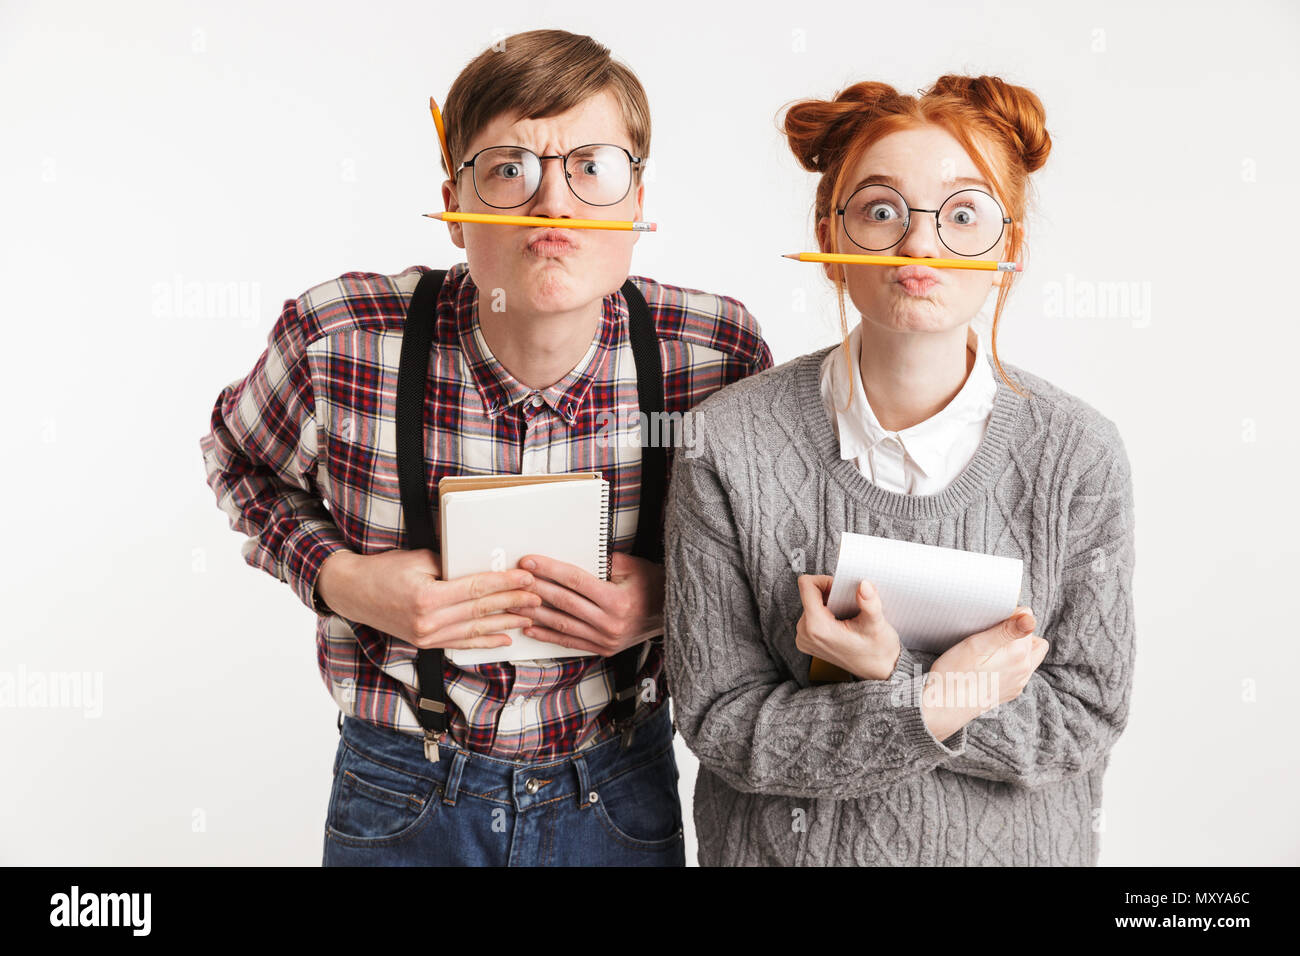 Funny couple of school nerds grimacing while holding notepads and pencils isolated over white background - Stock Image